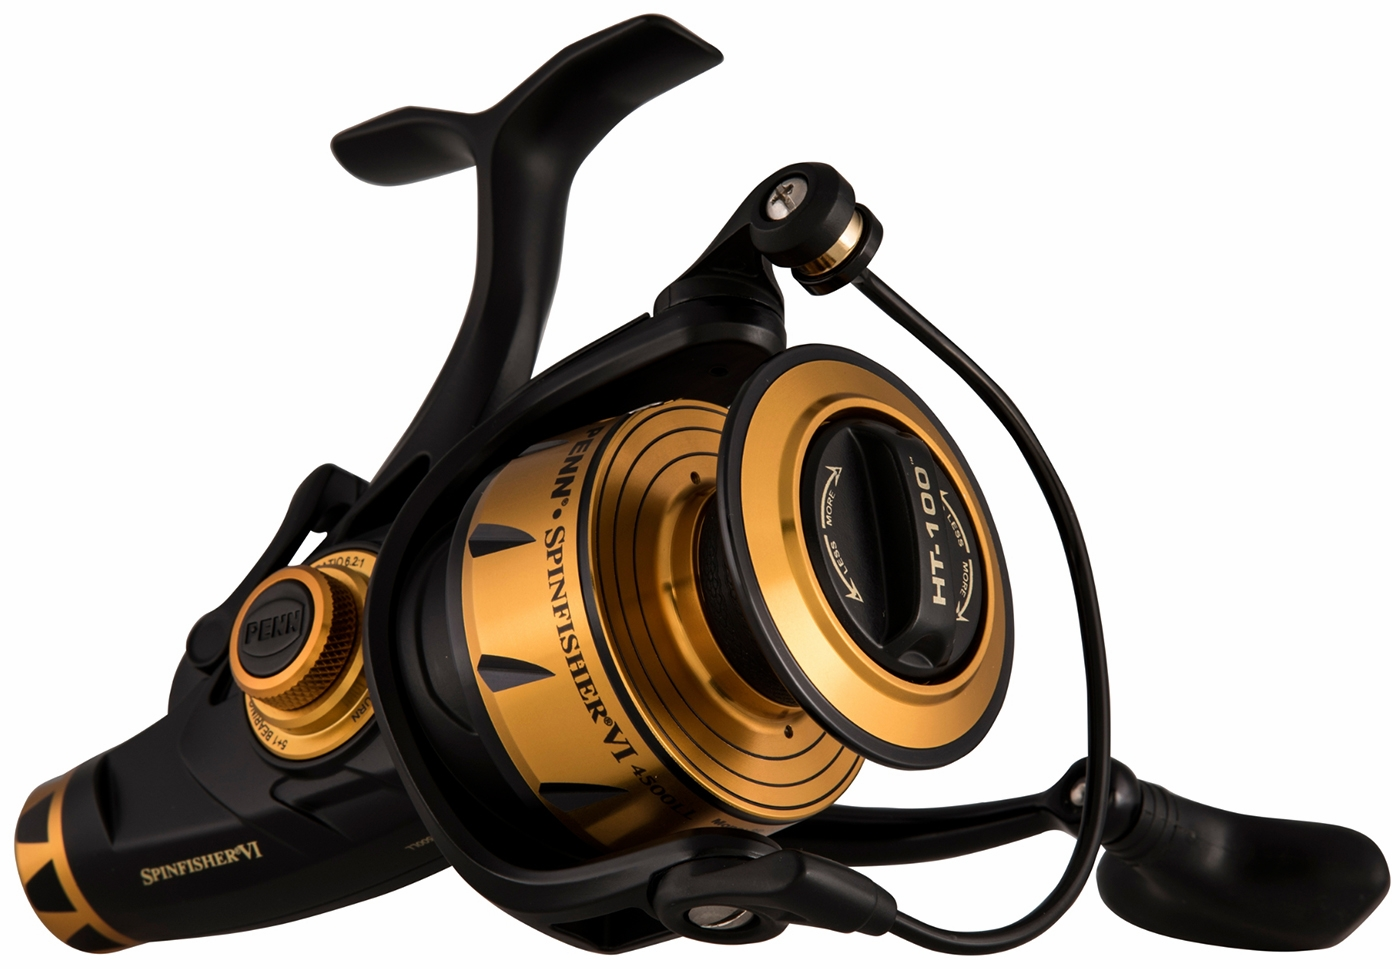 b20518cdc8d Penn Spinfisher VI SSVI4500LL Spinning Reel - TackleDirect